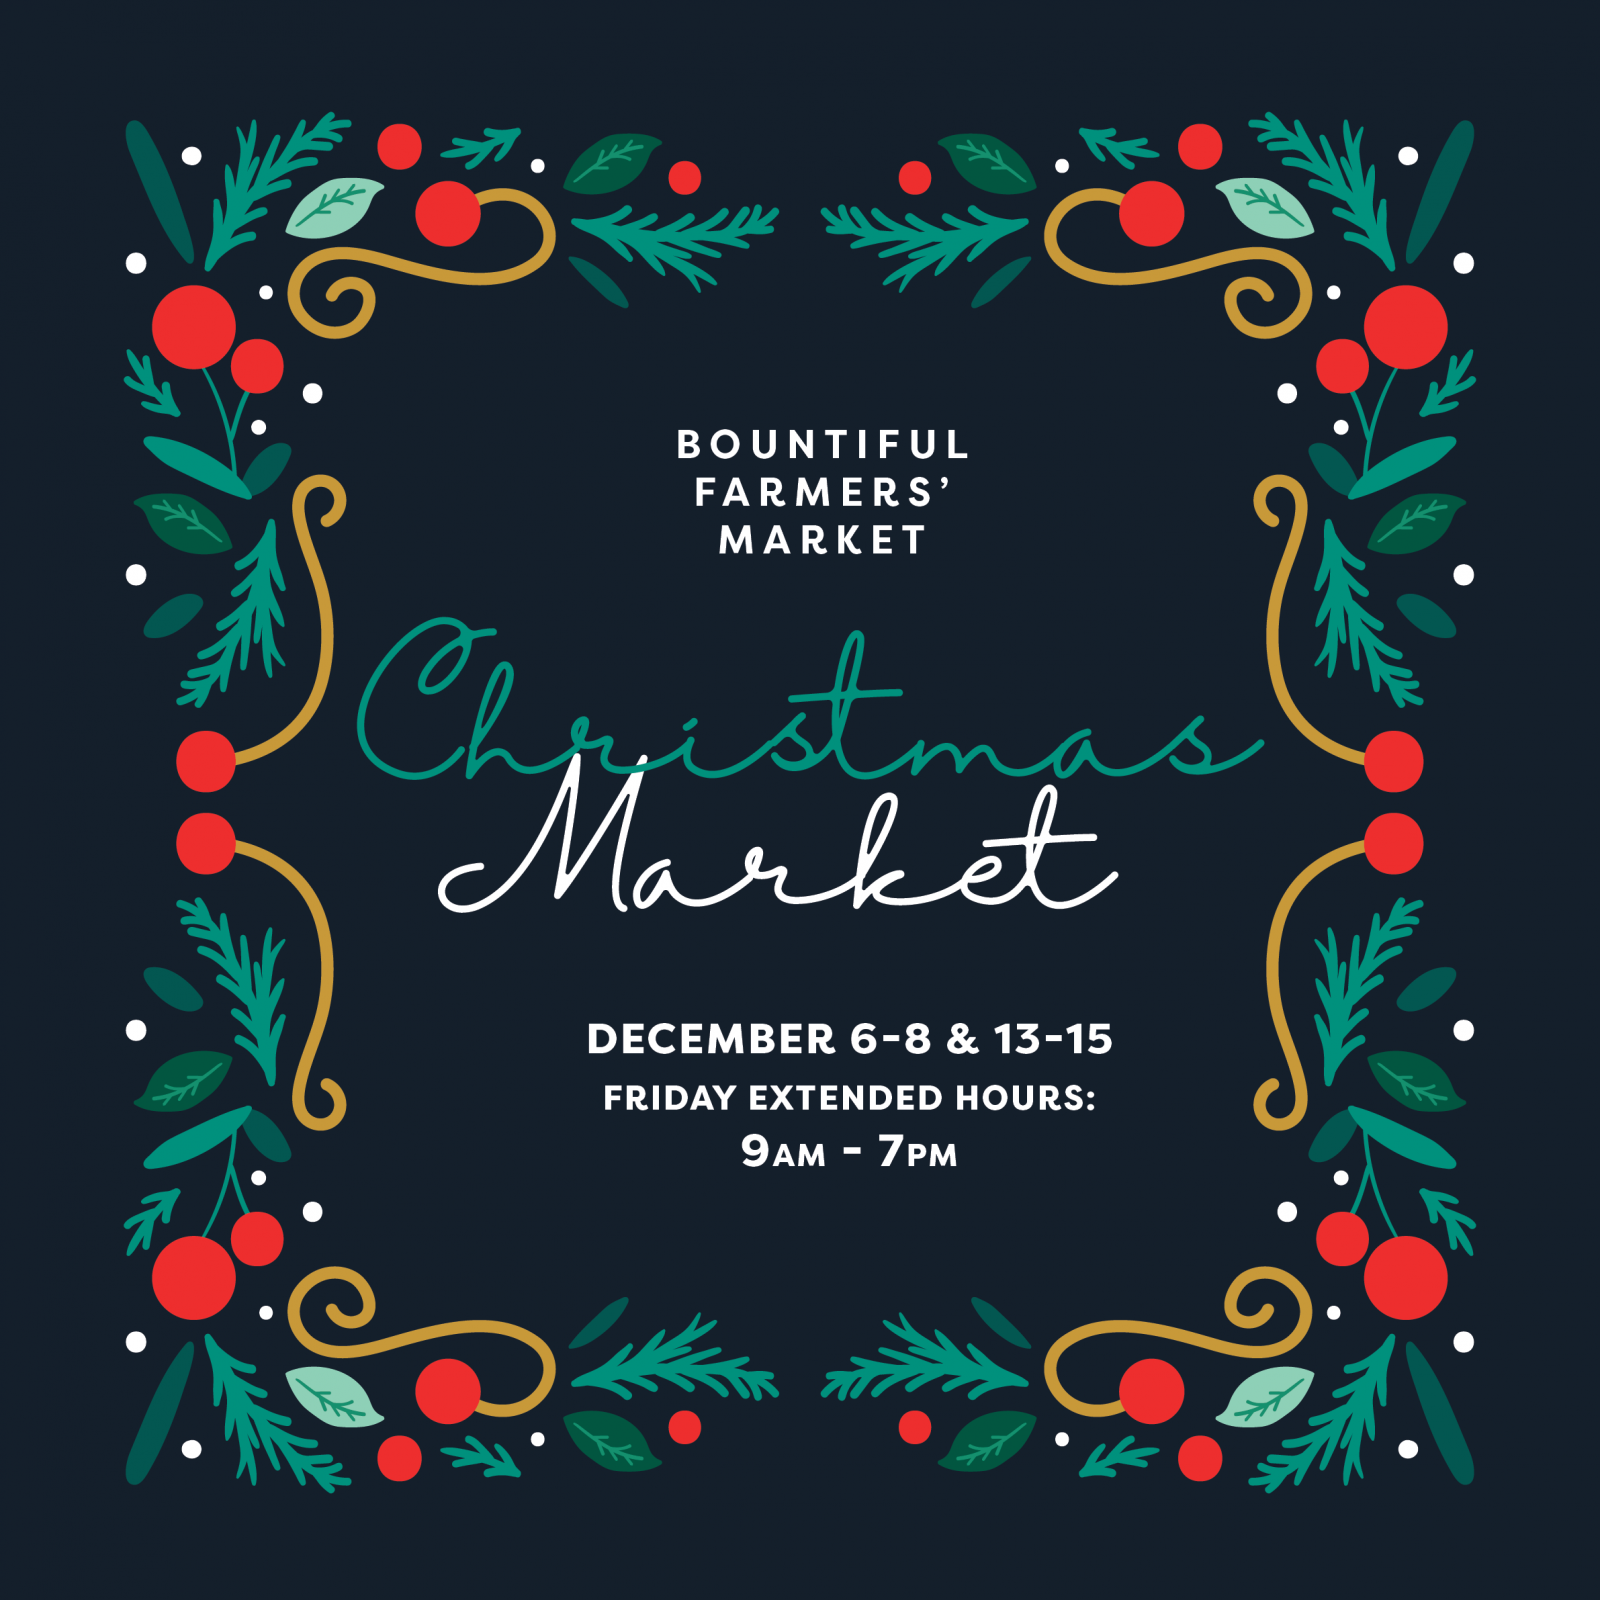 Christmas Markets at Bountiful Farmers' Market